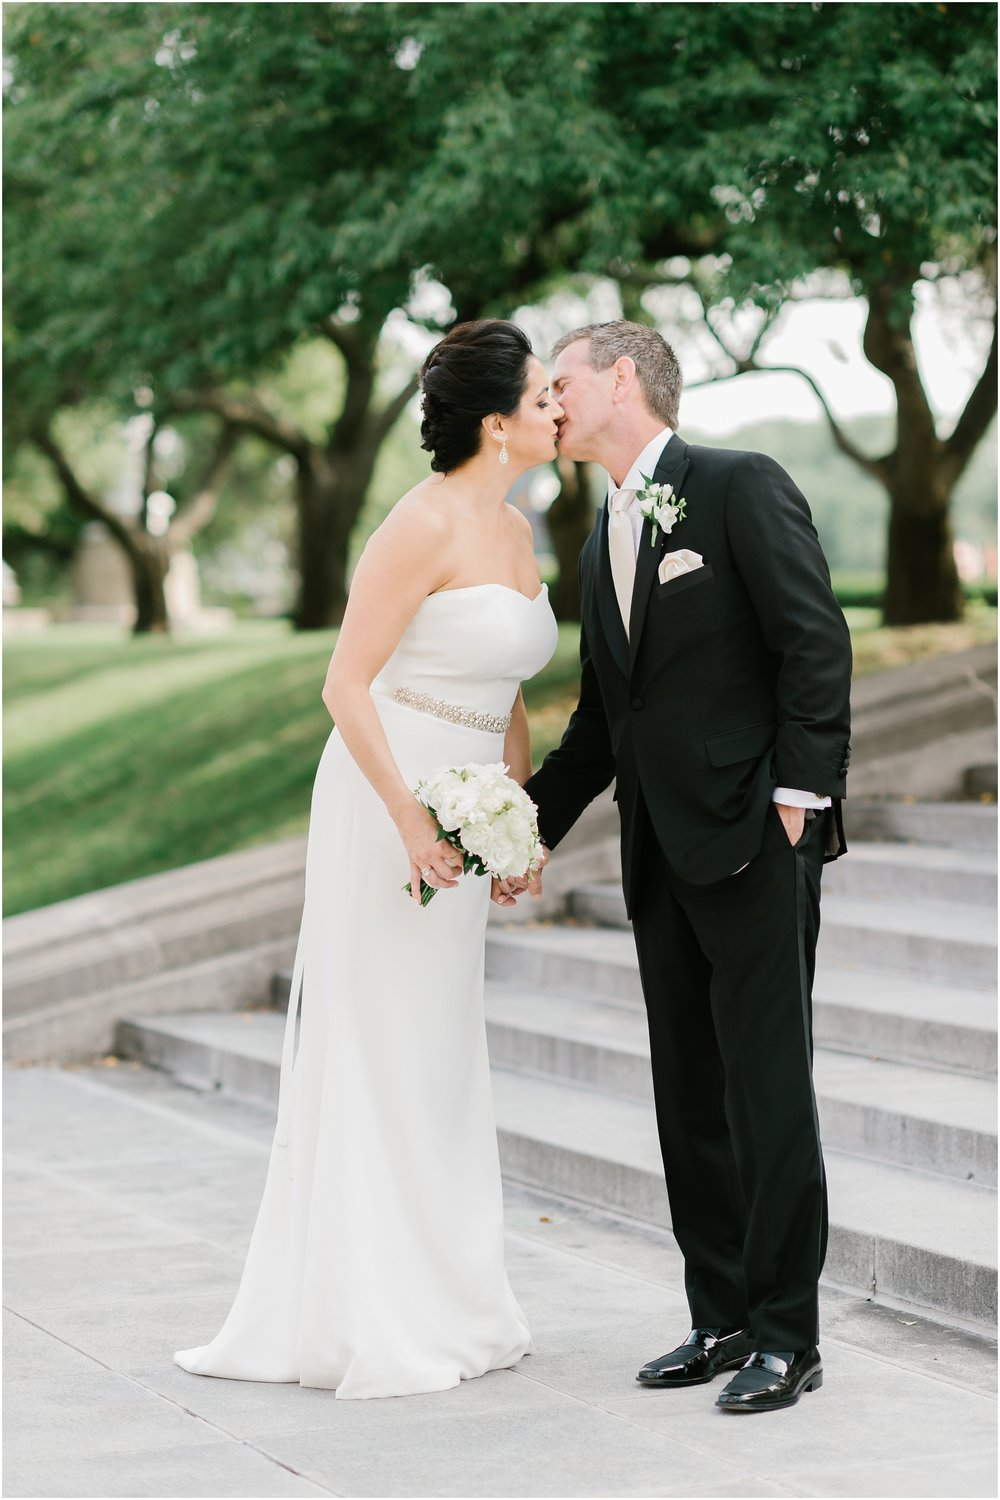 Rebecca_Shehorn_Photography_Indianapolis_Wedding_Photographer_8554.jpg